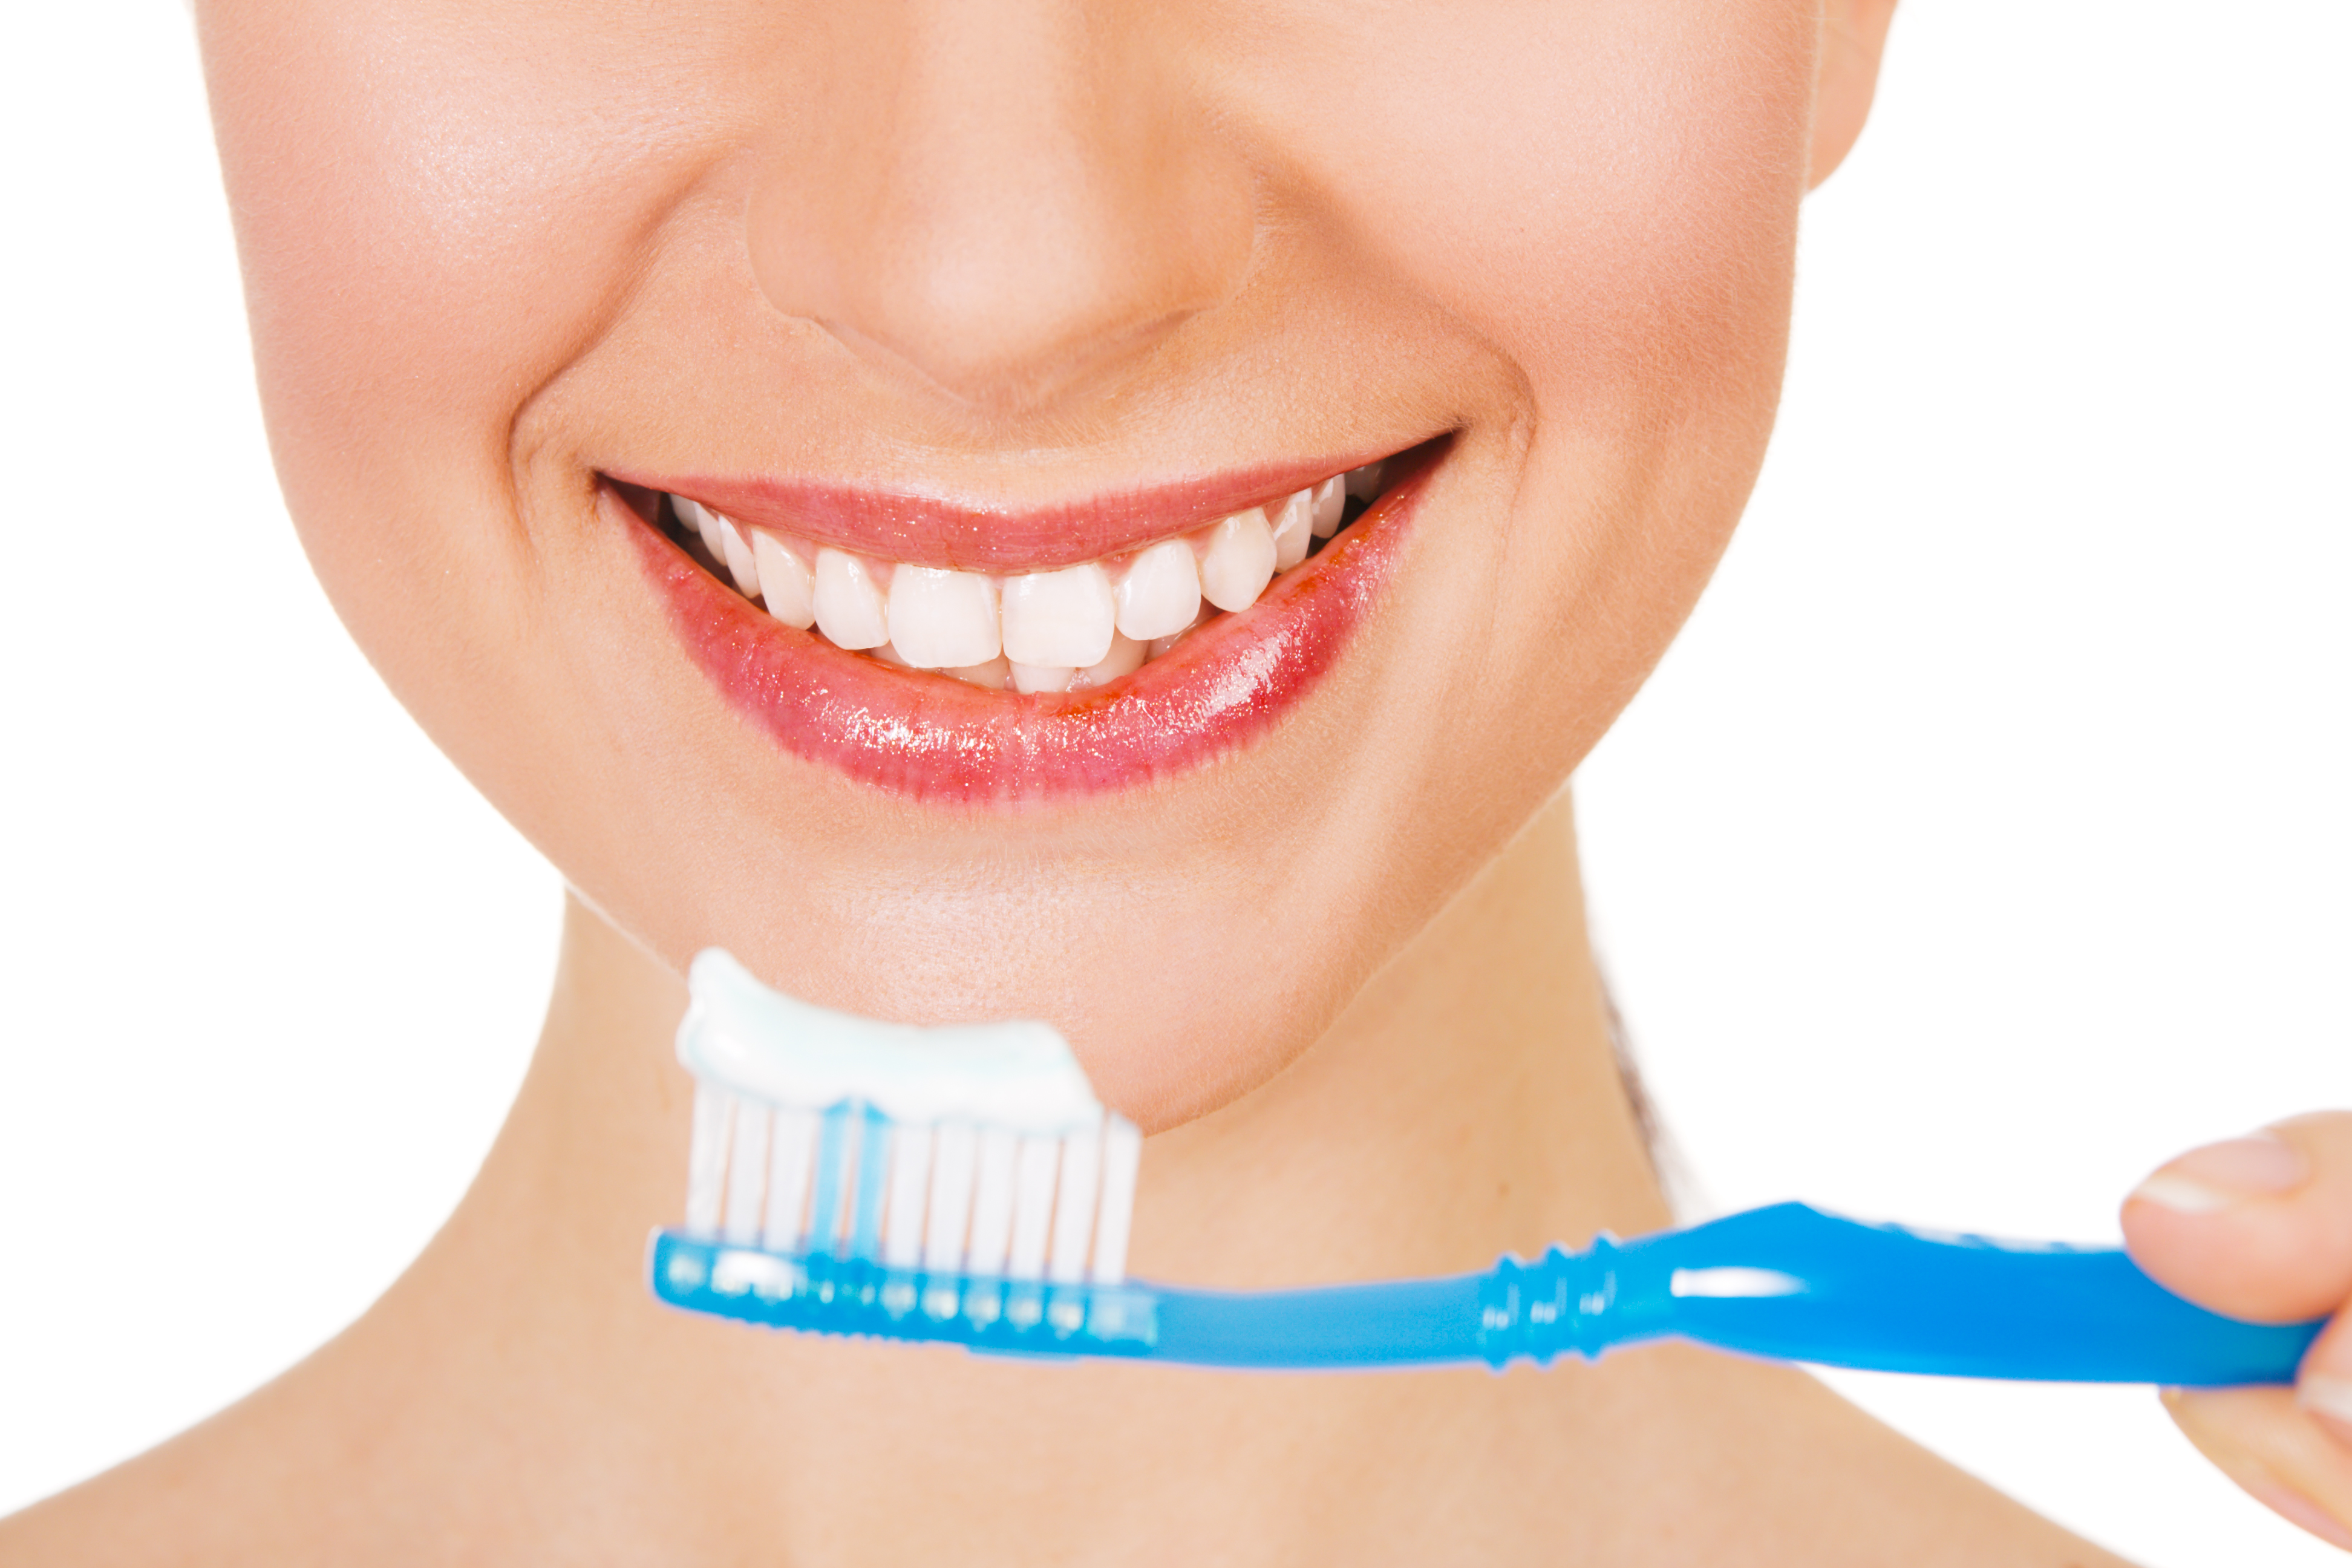 We Invite You to The Top Dentist Bergen County so That You Smile Freely